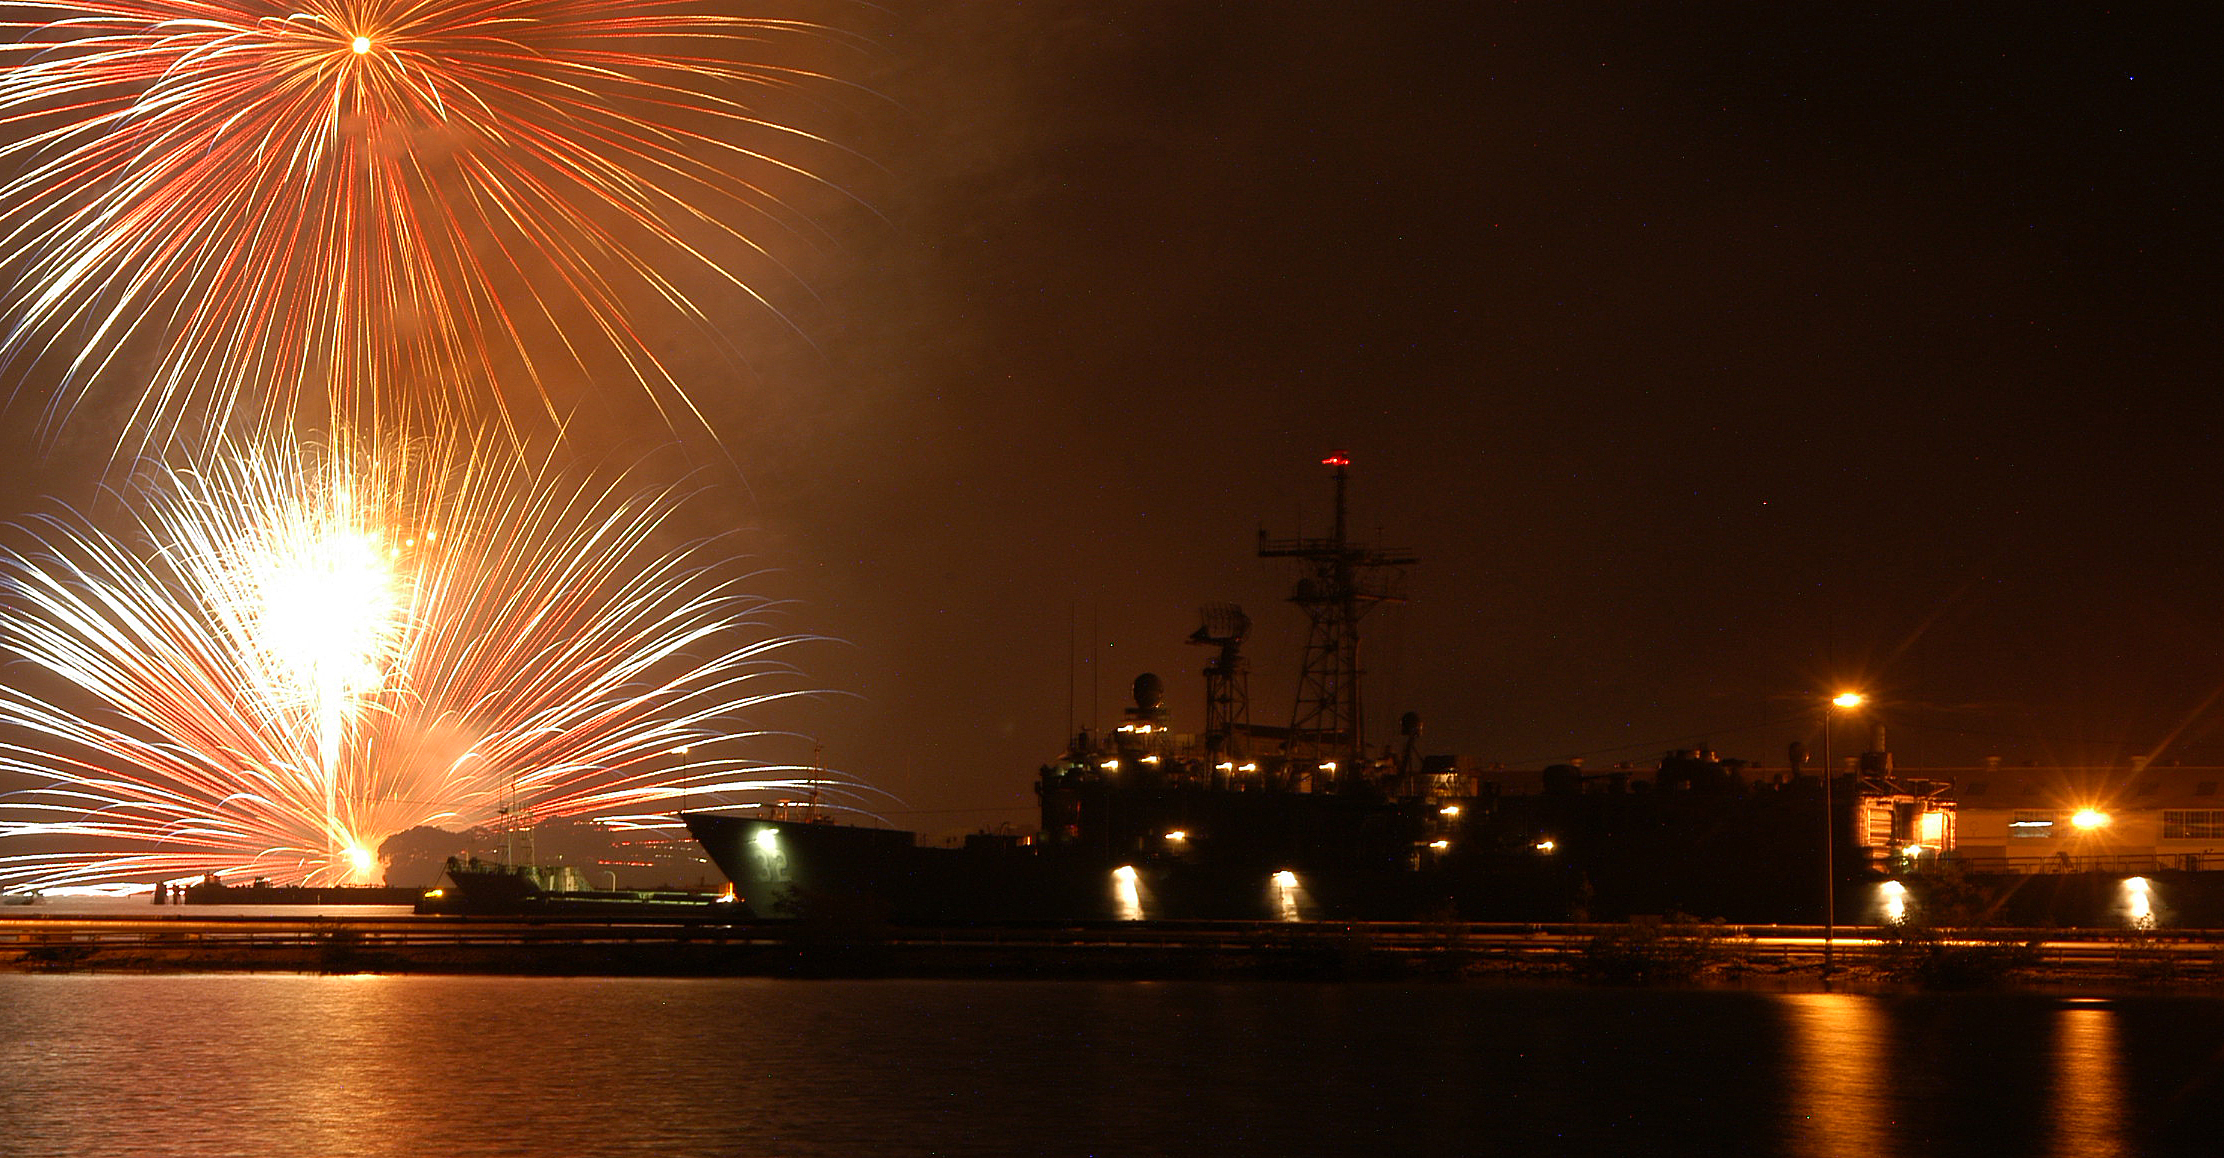 Fireworks explode above frigate USS John L. Hall (FFG-32) while moored pierside at U.S. Naval Station, Guantanamo Bay during an Independence Day celebration in 2004. US Navy Photo